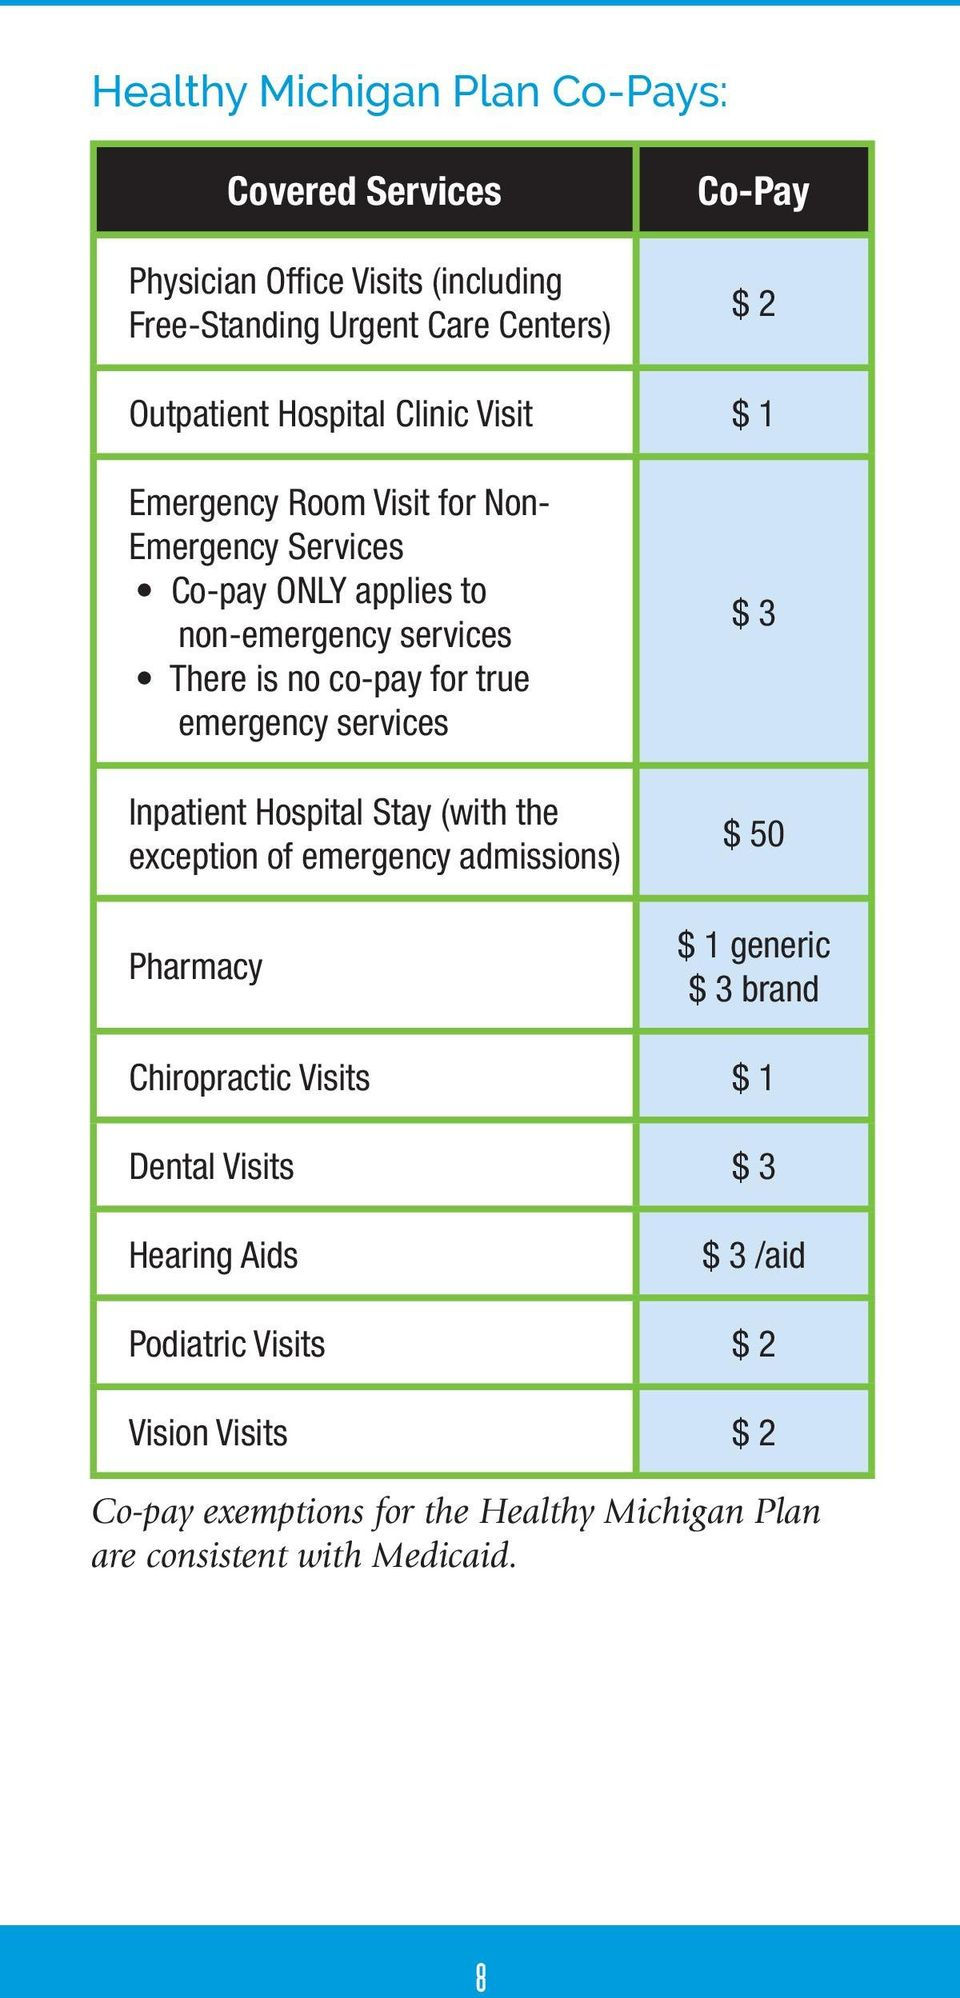 services Inpatient Hospital Stay (with the exception of emergency admissions) Pharmacy $ 3 $ 50 $ 1 generic $ 3 brand Chiropractic Visits $ 1 Dental